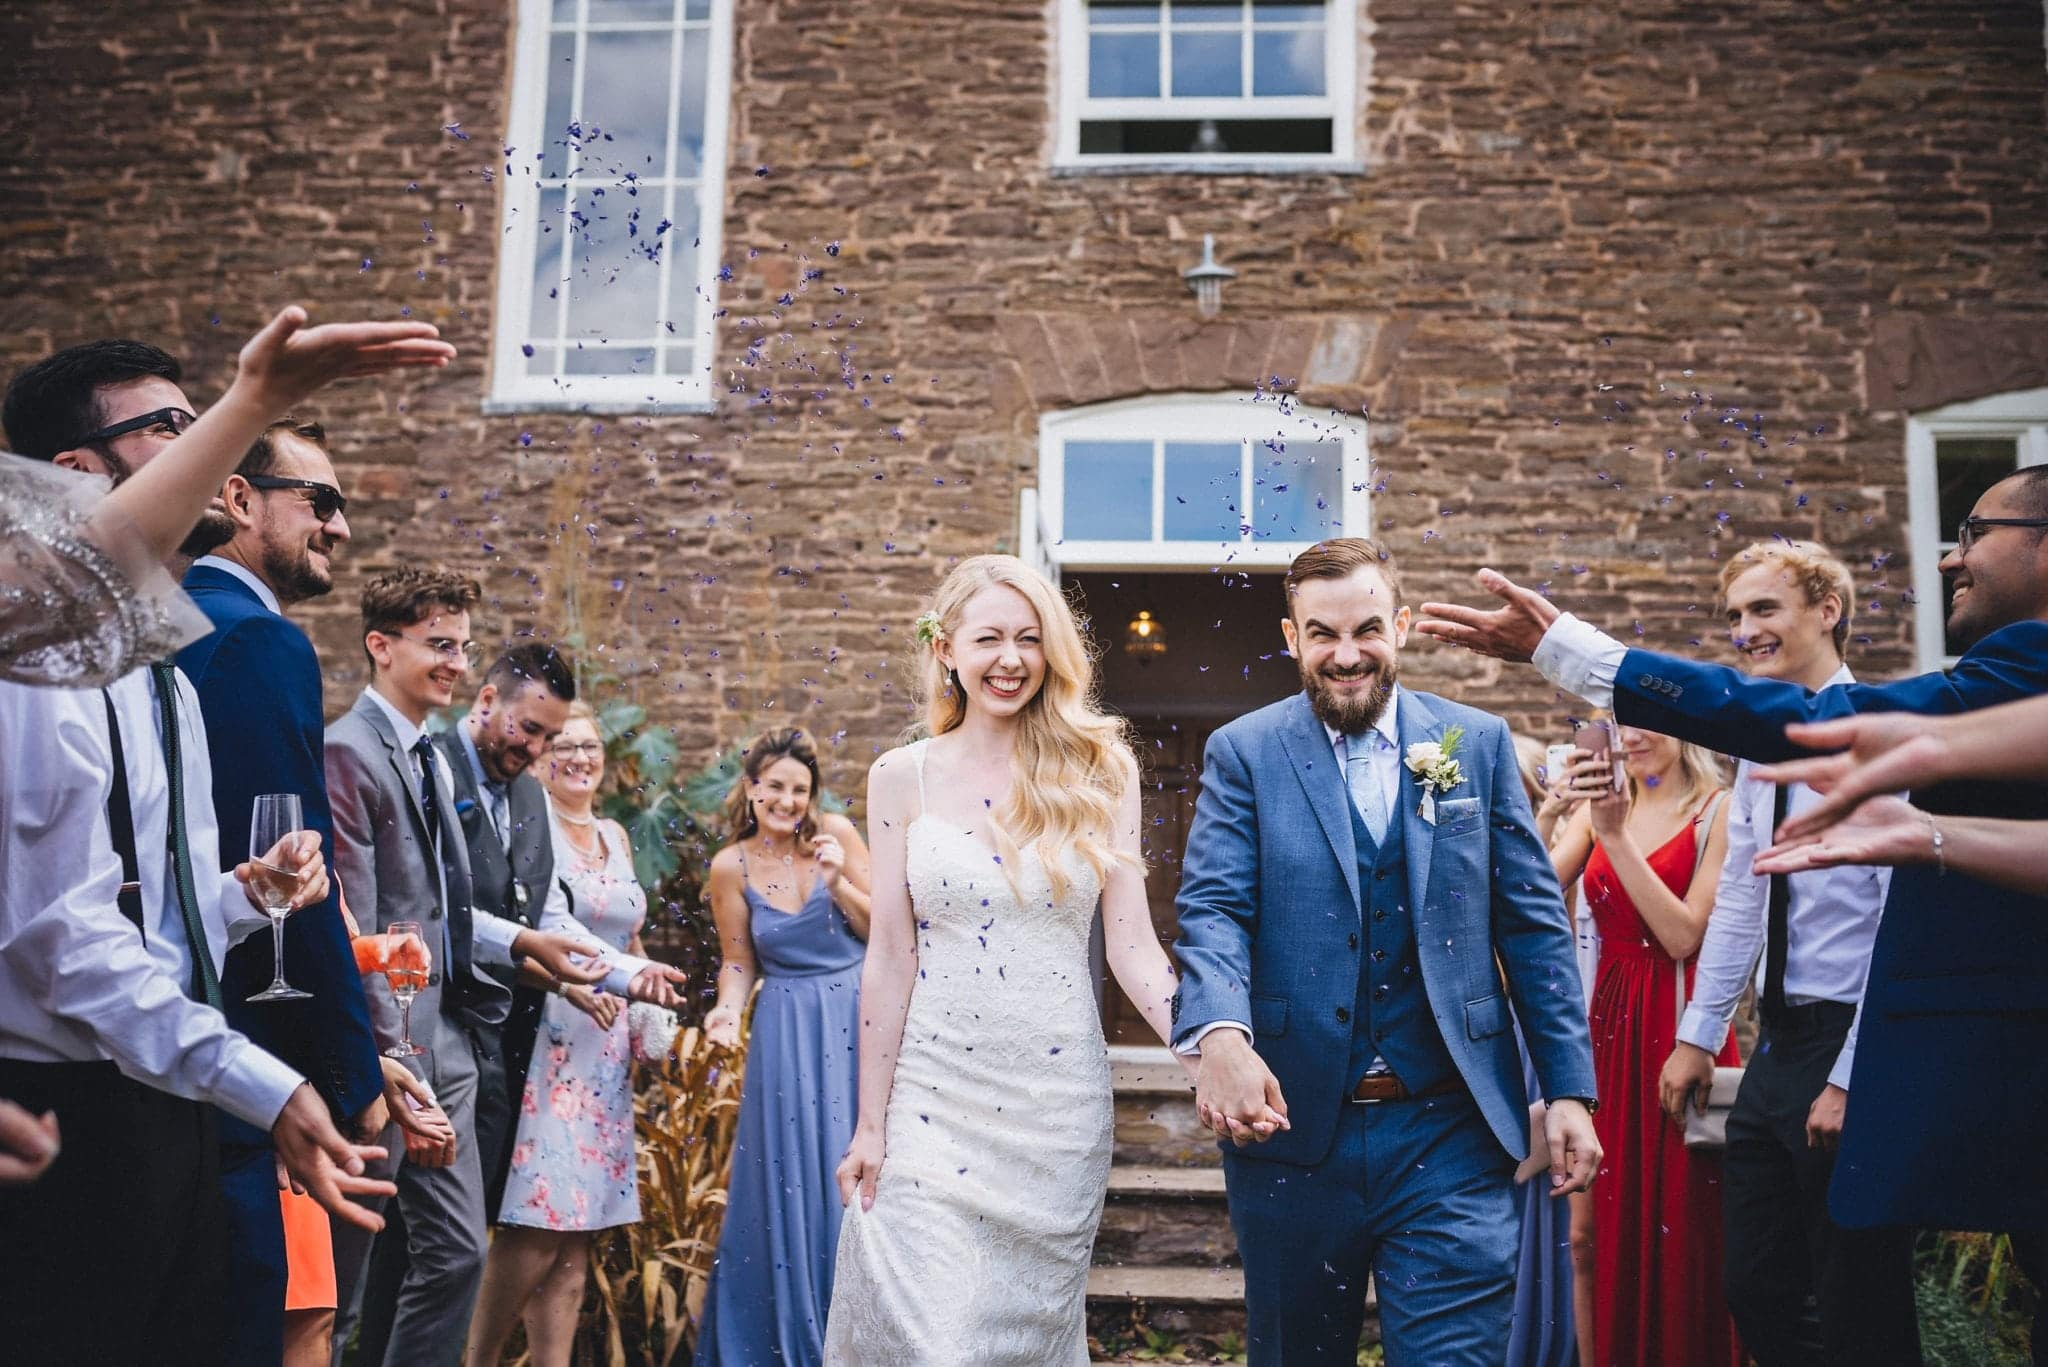 Bride and groom get covered in purple confetti petals at their Dewsall Court wedding